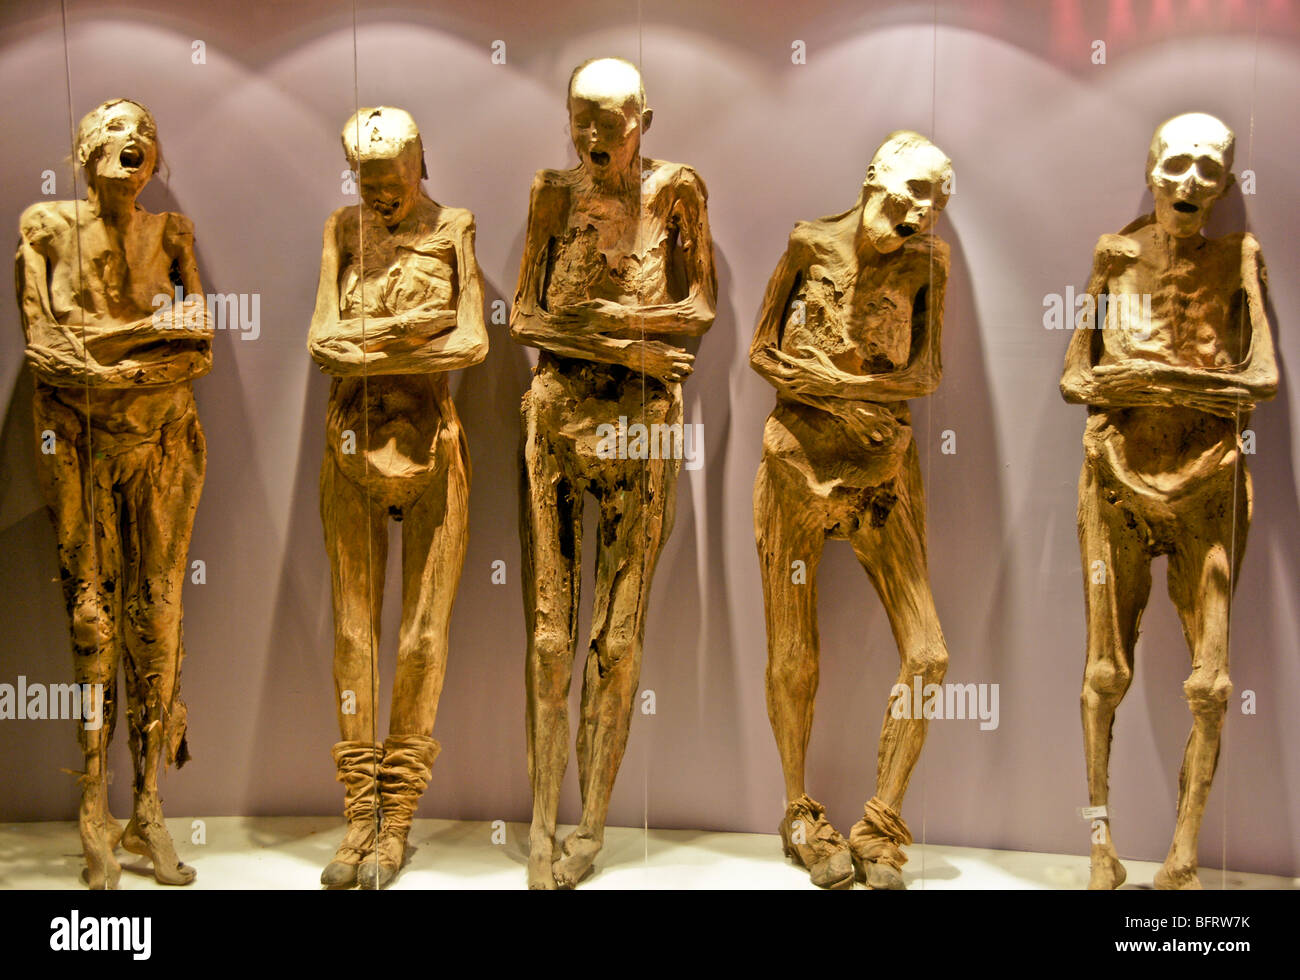 Guanajuato's Museo de las Momias with mummified bodies in glass display cases - Stock Image